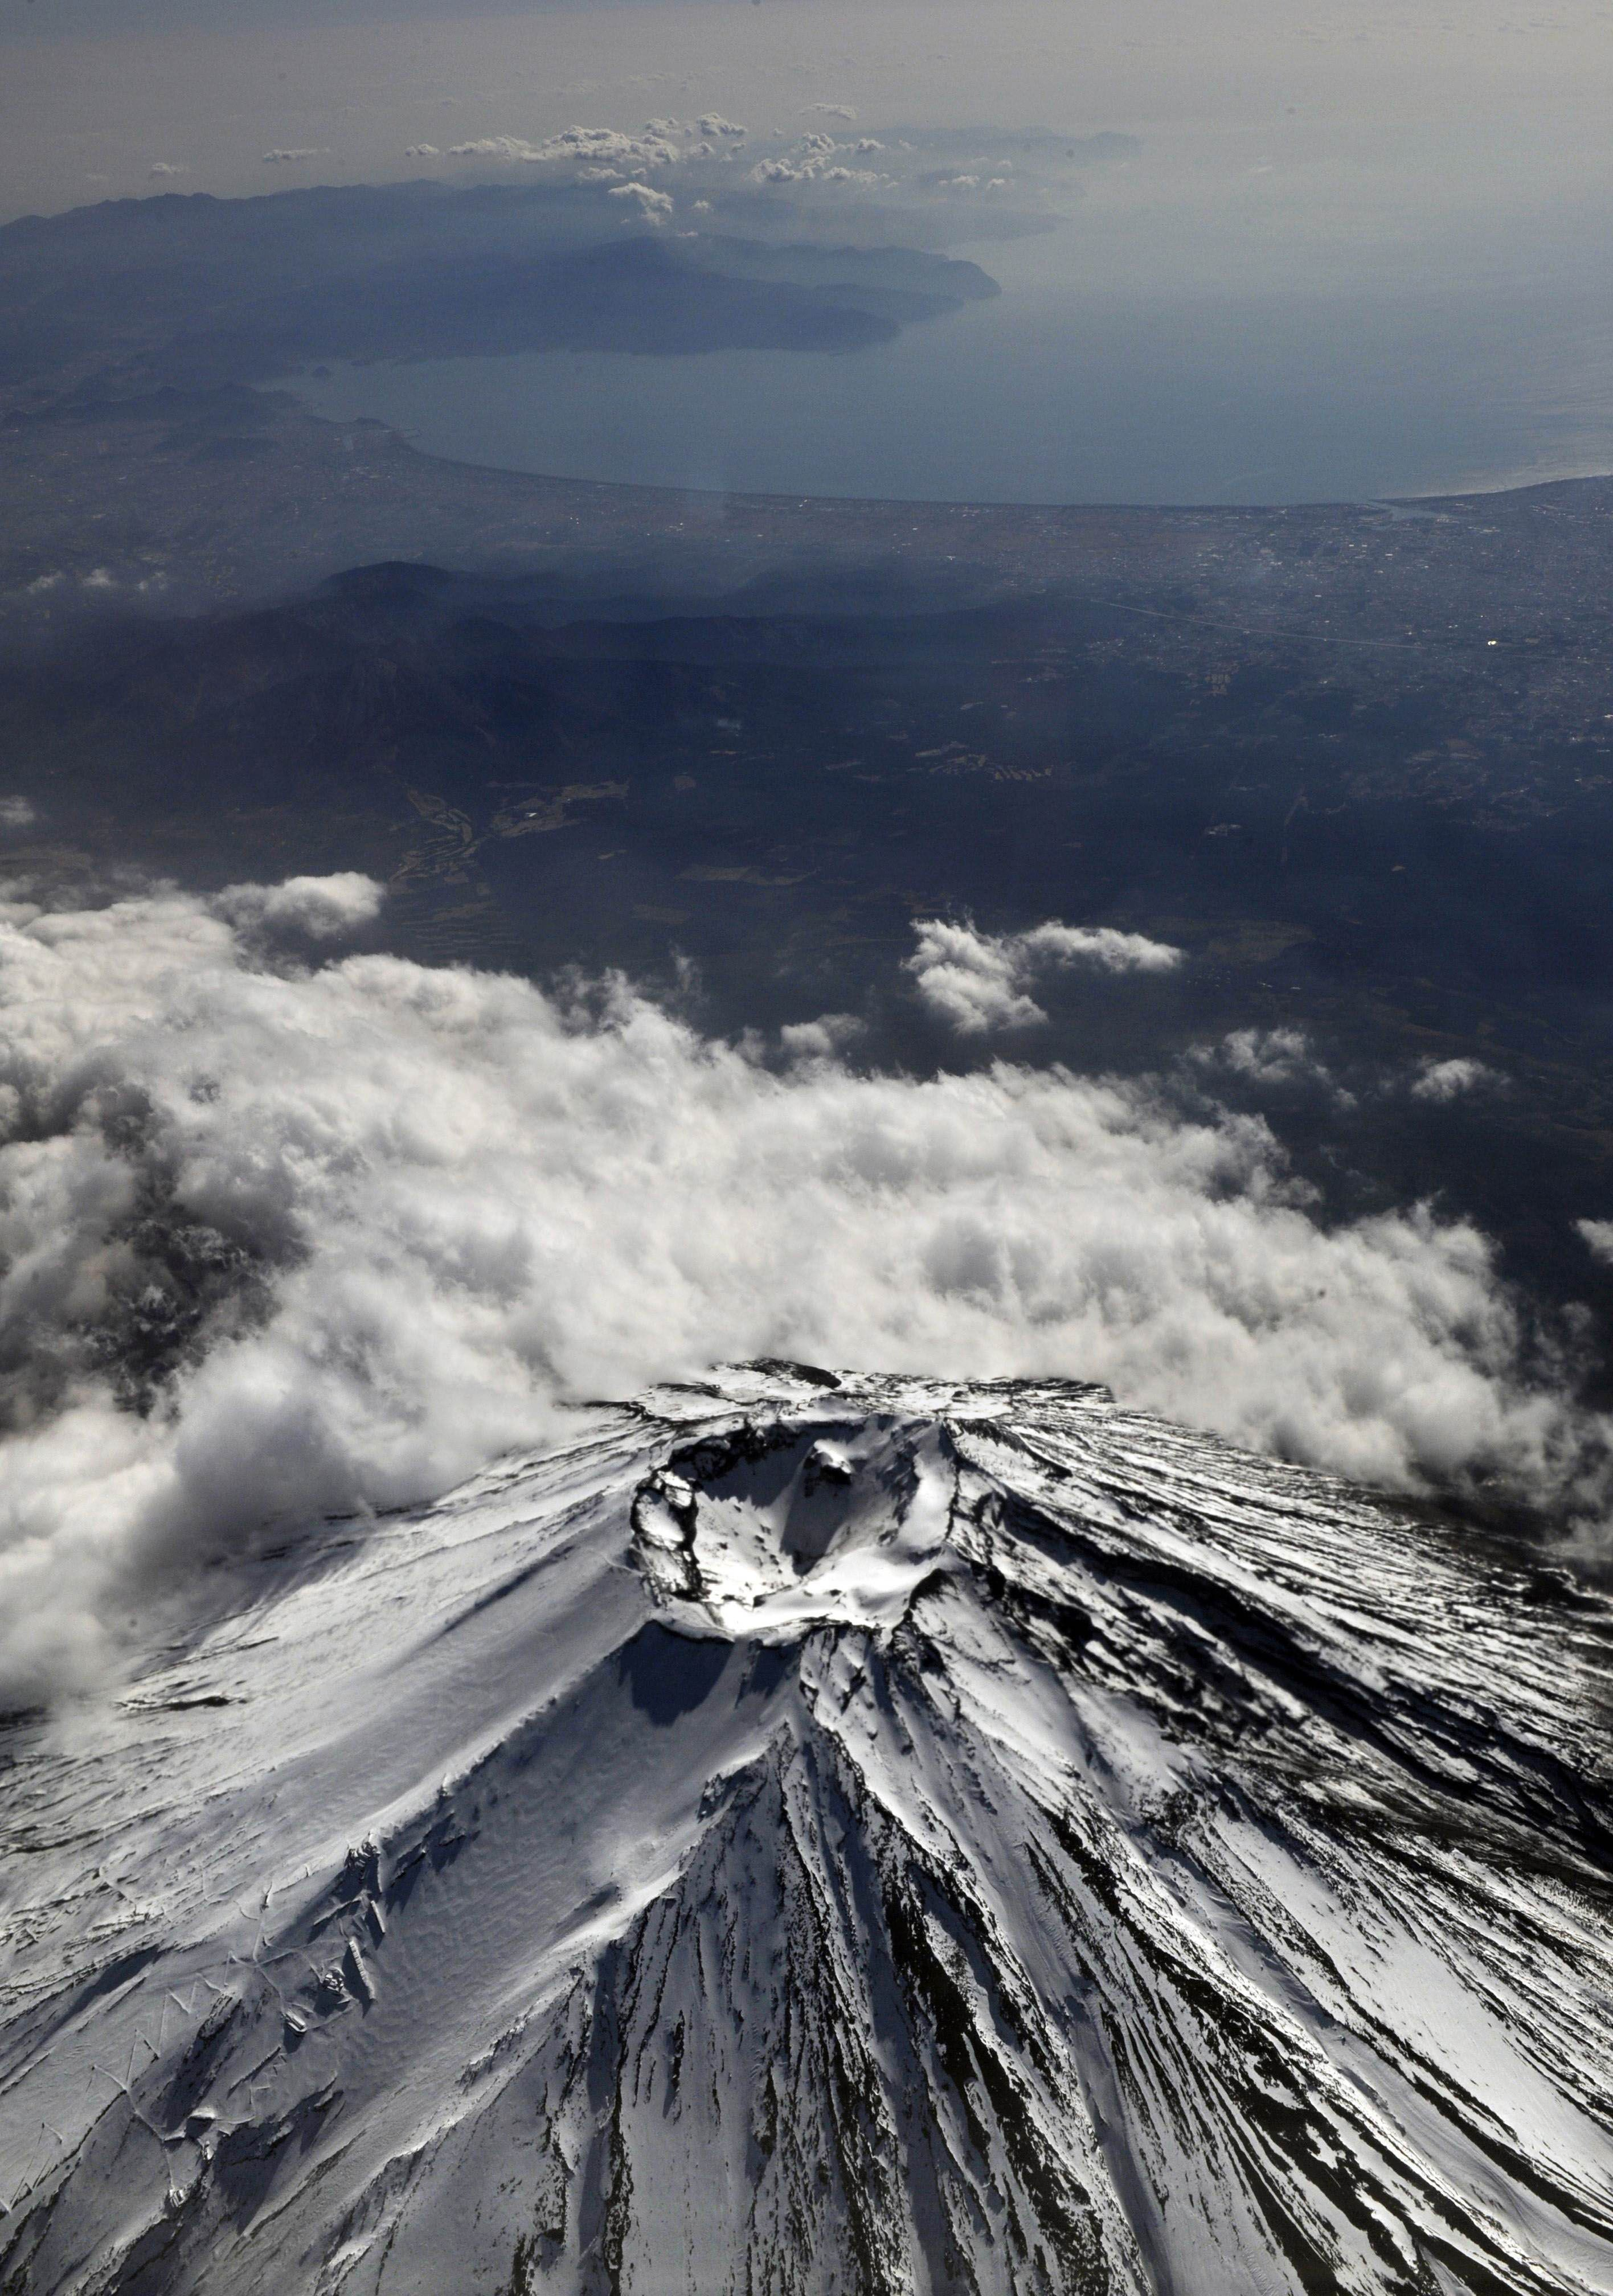 Mount Fuji on verge of World Heritage listing - The Japan Times